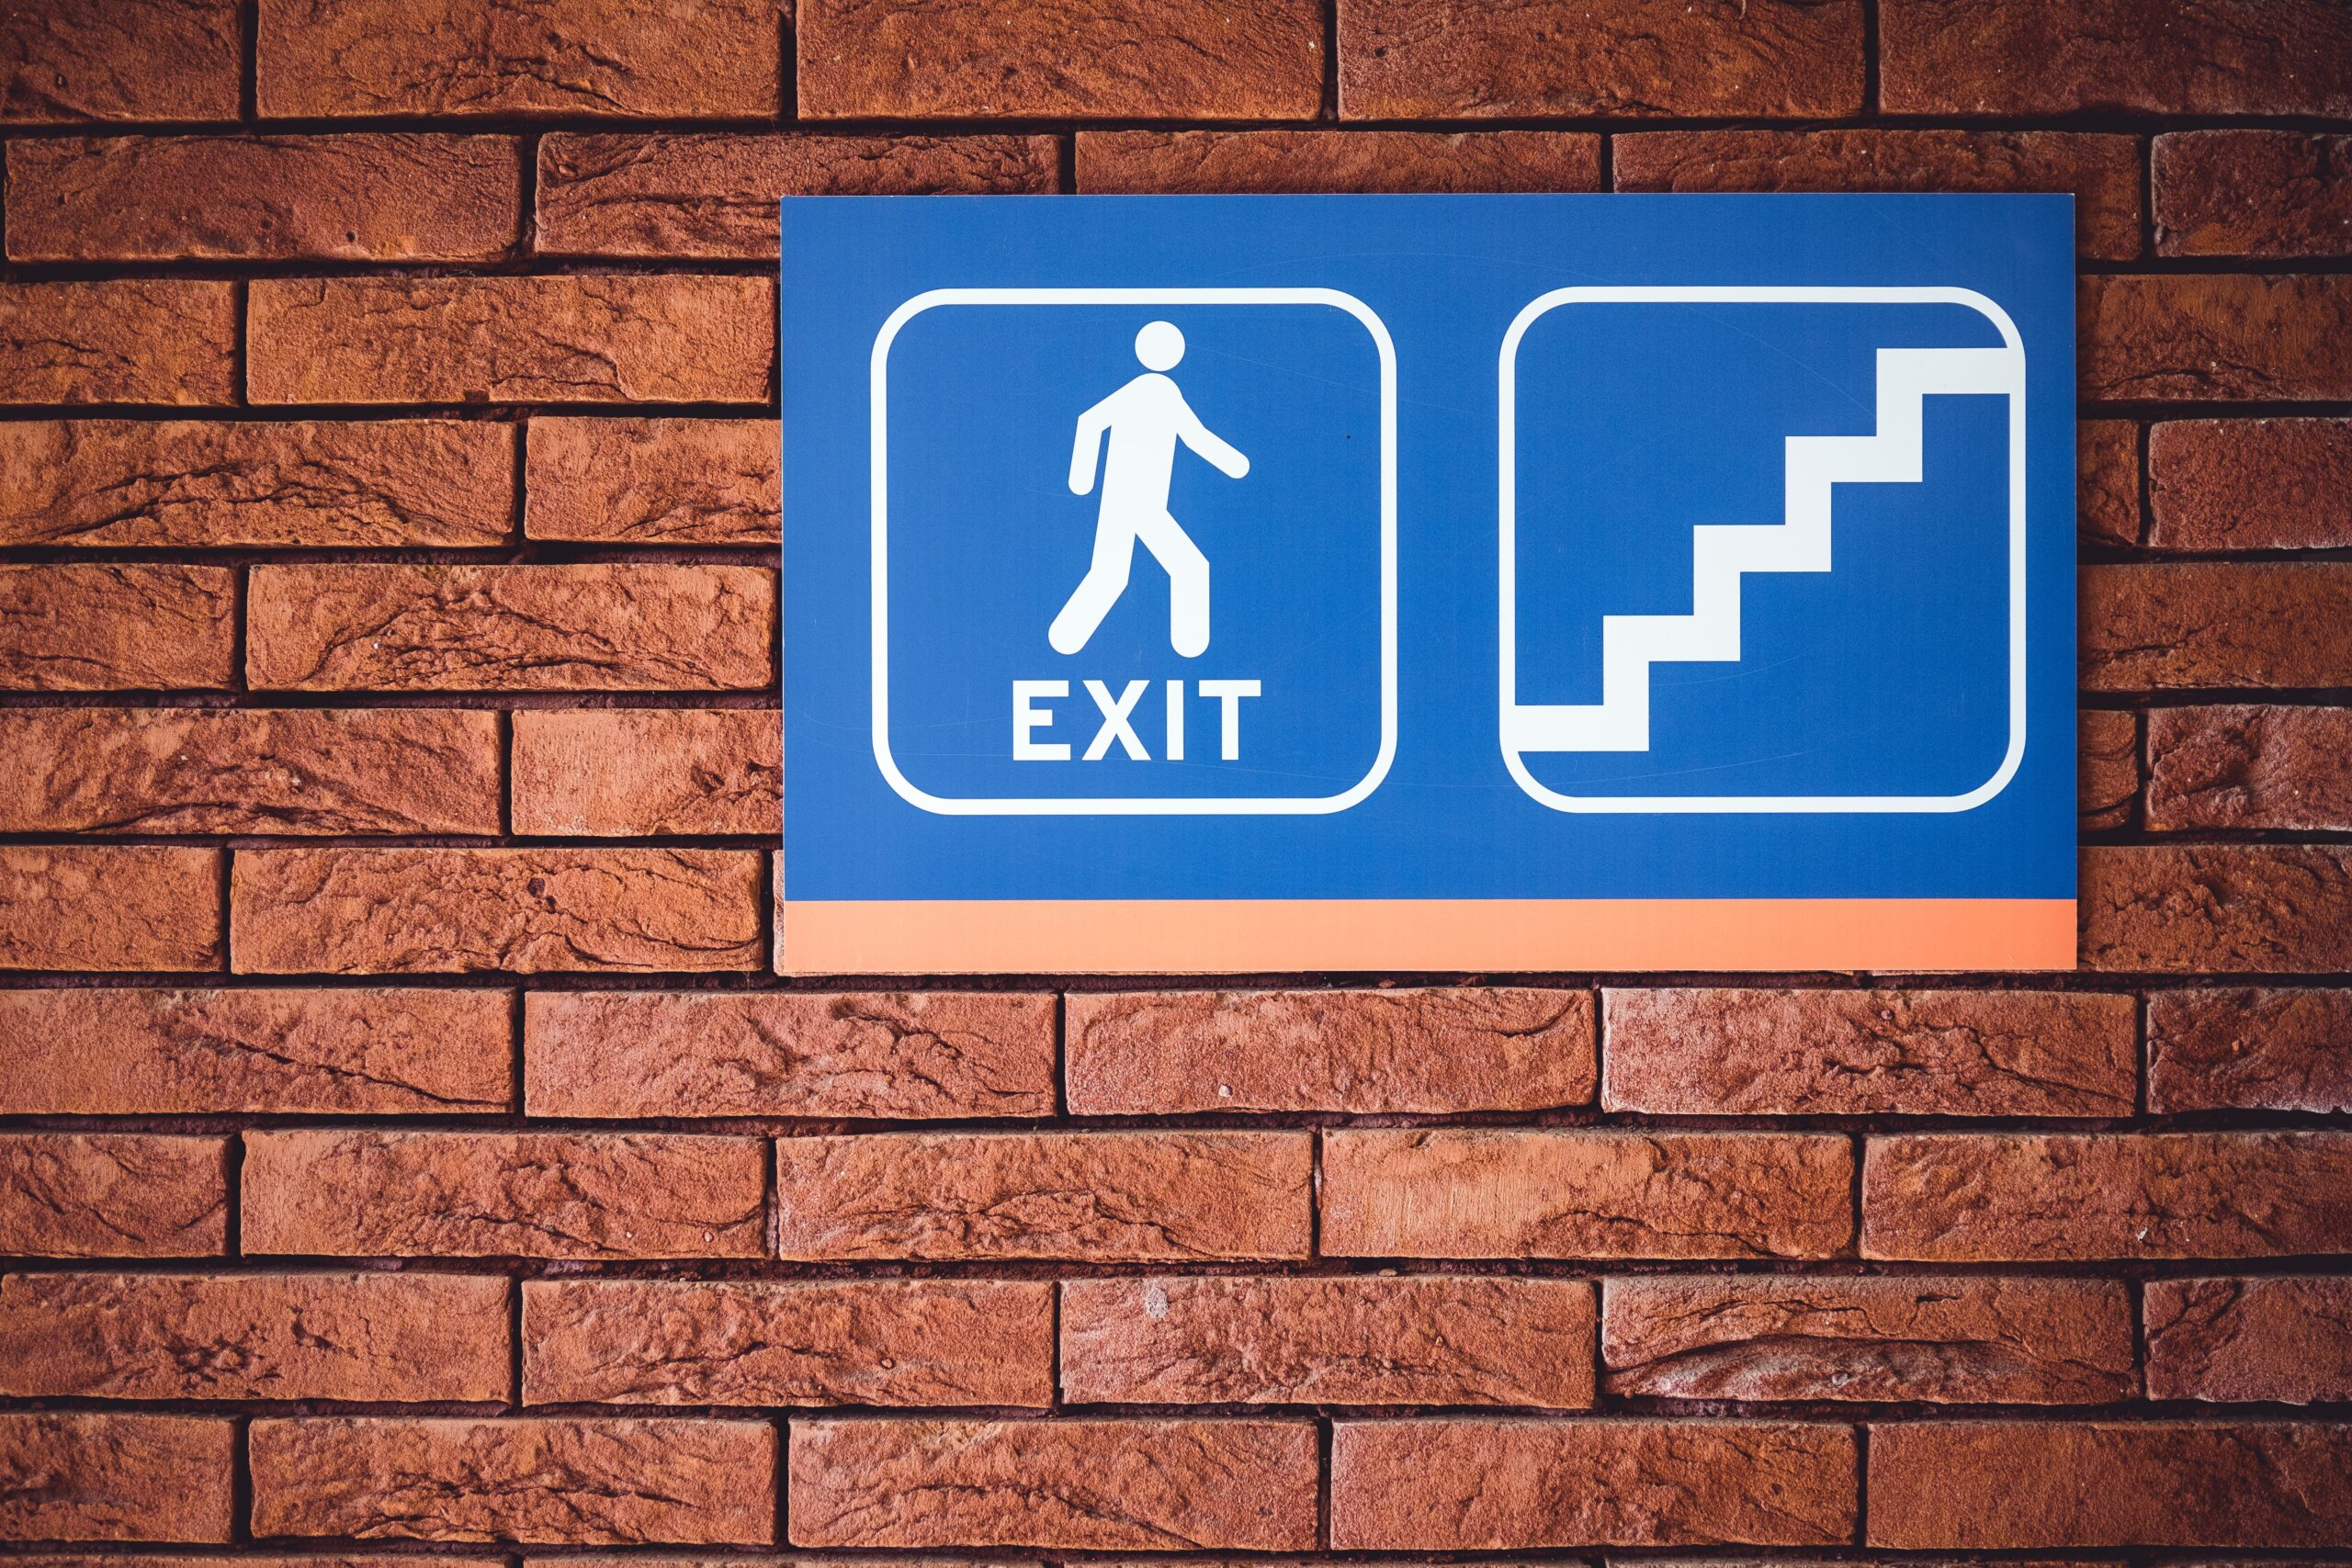 """Red brick wall with a blue plastic sign hanging on it. Two pictures inside round-cornered boxes in white lines. One shows a human figure walking and reads """"EXIT"""". The other box shows a staircase."""